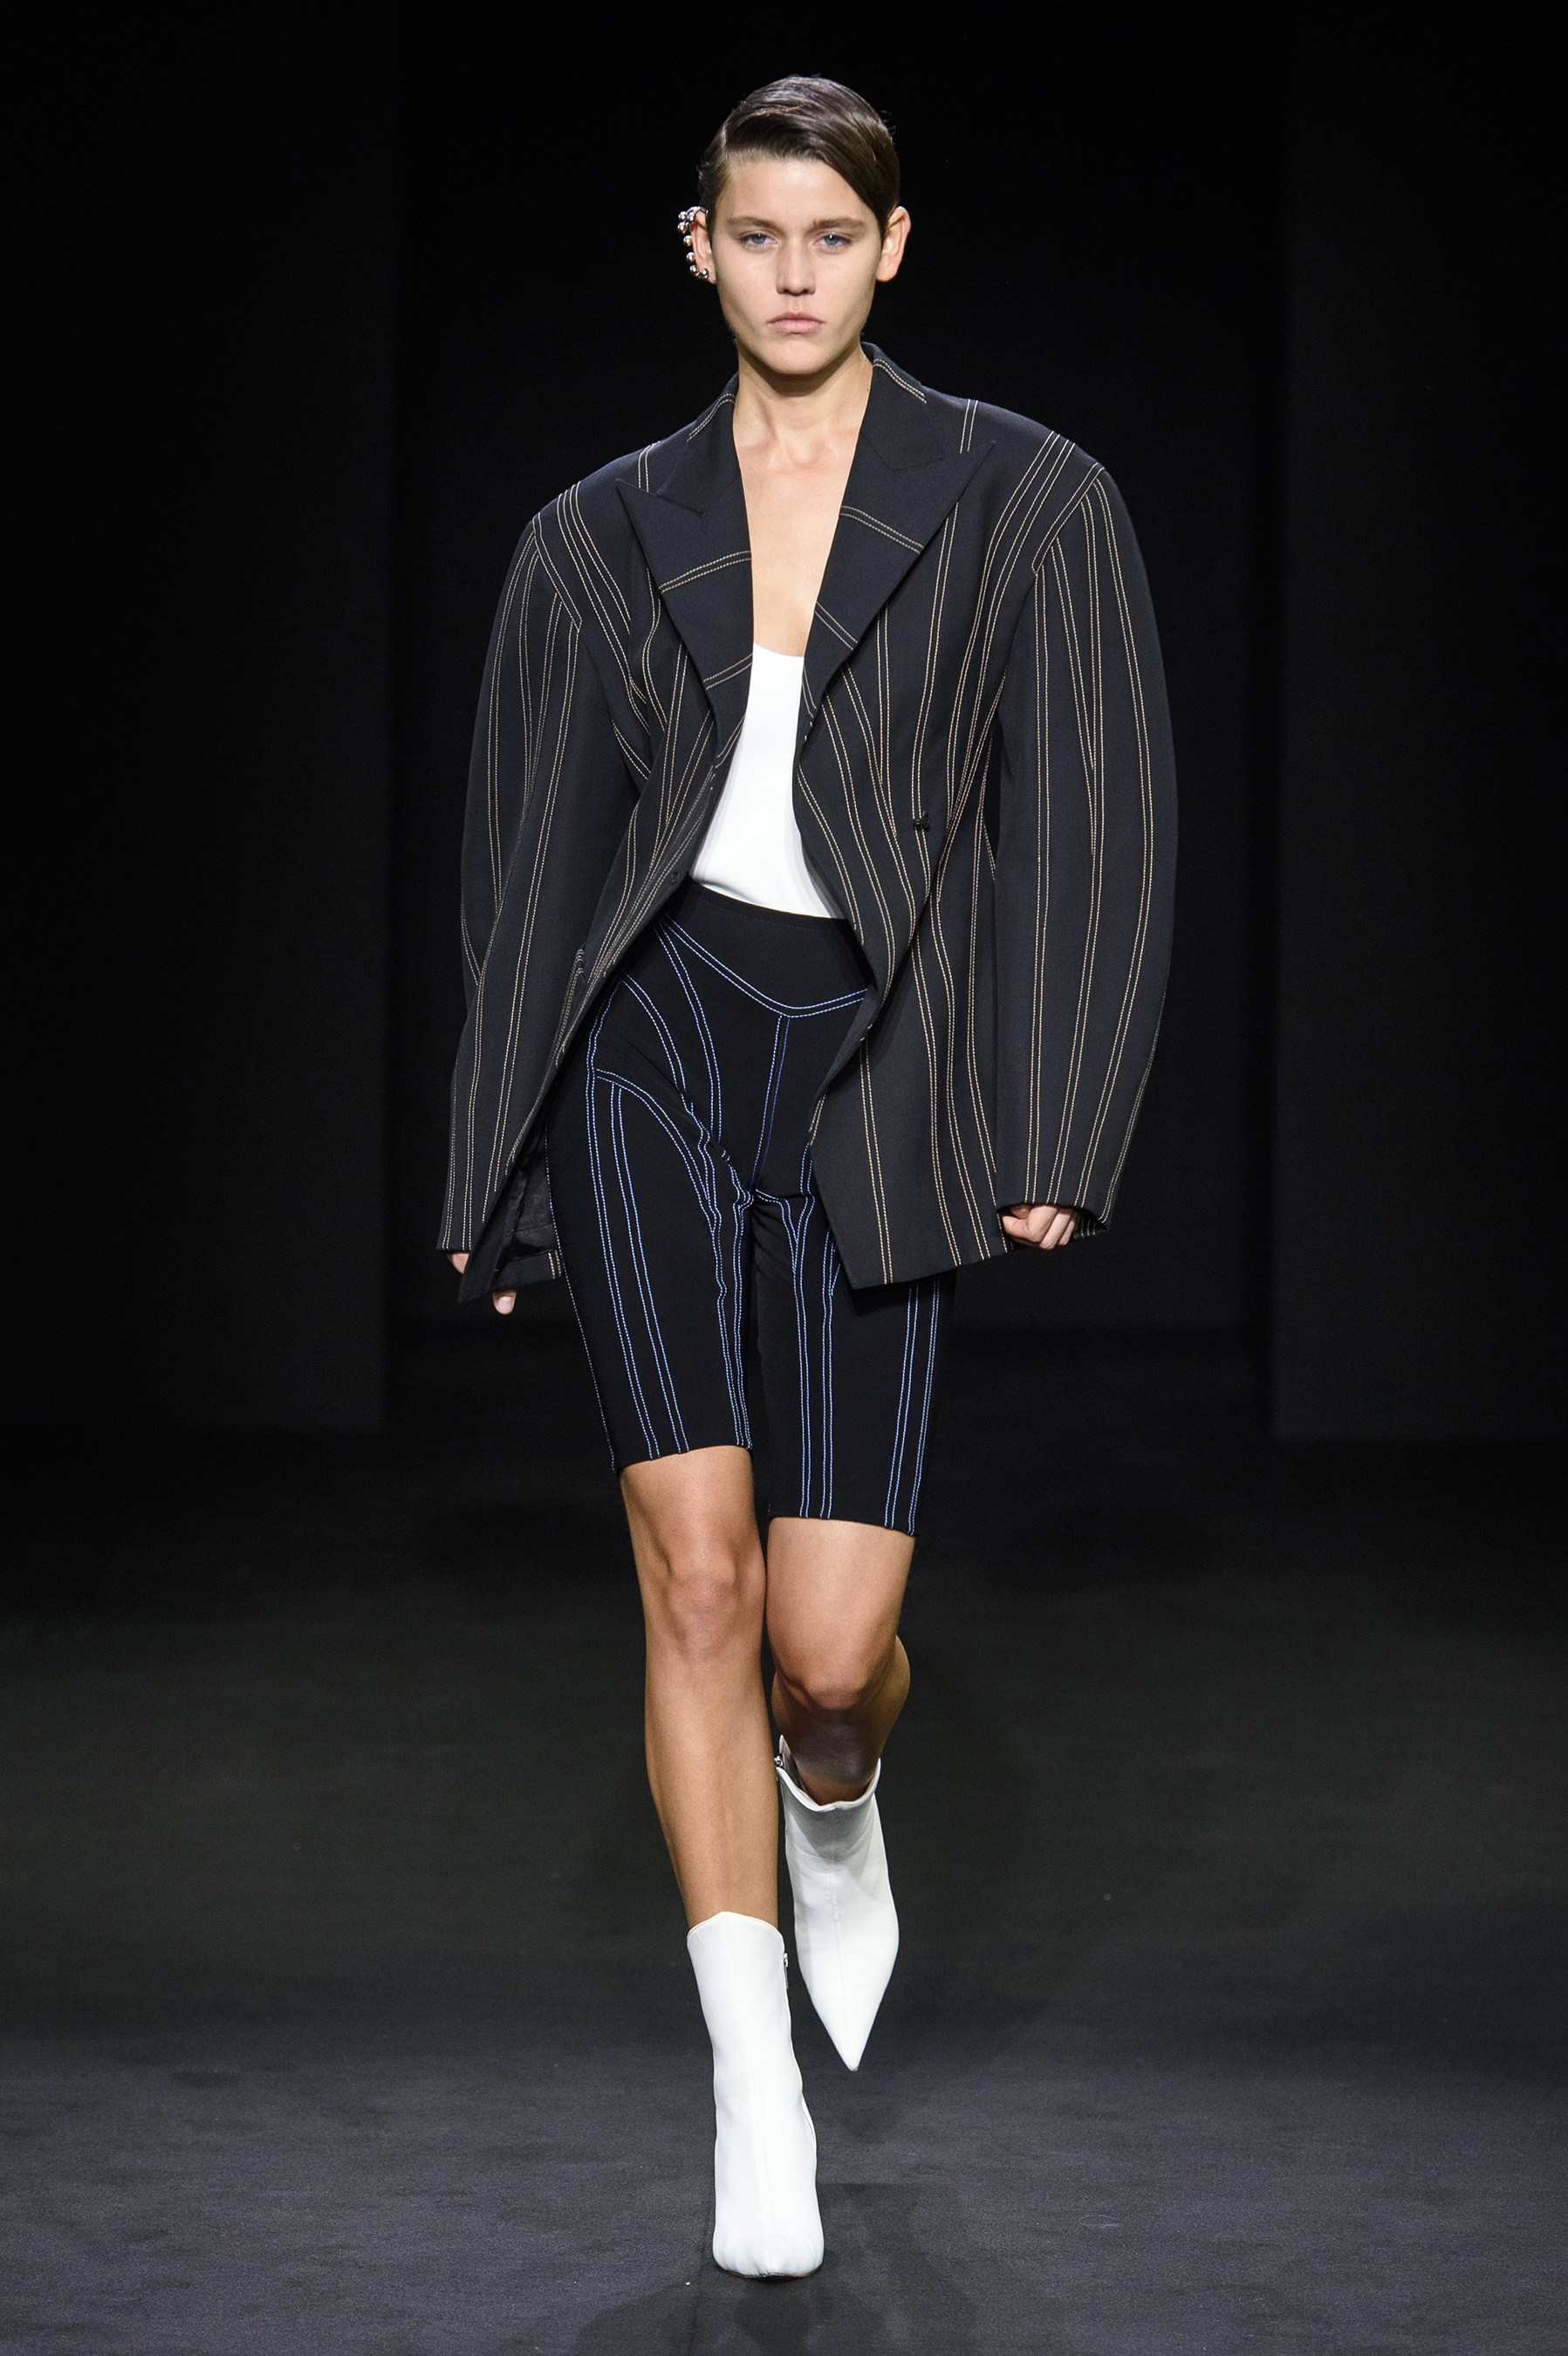 Take Up Arms - Wide Sleeve Fashion Trend Spring 2019